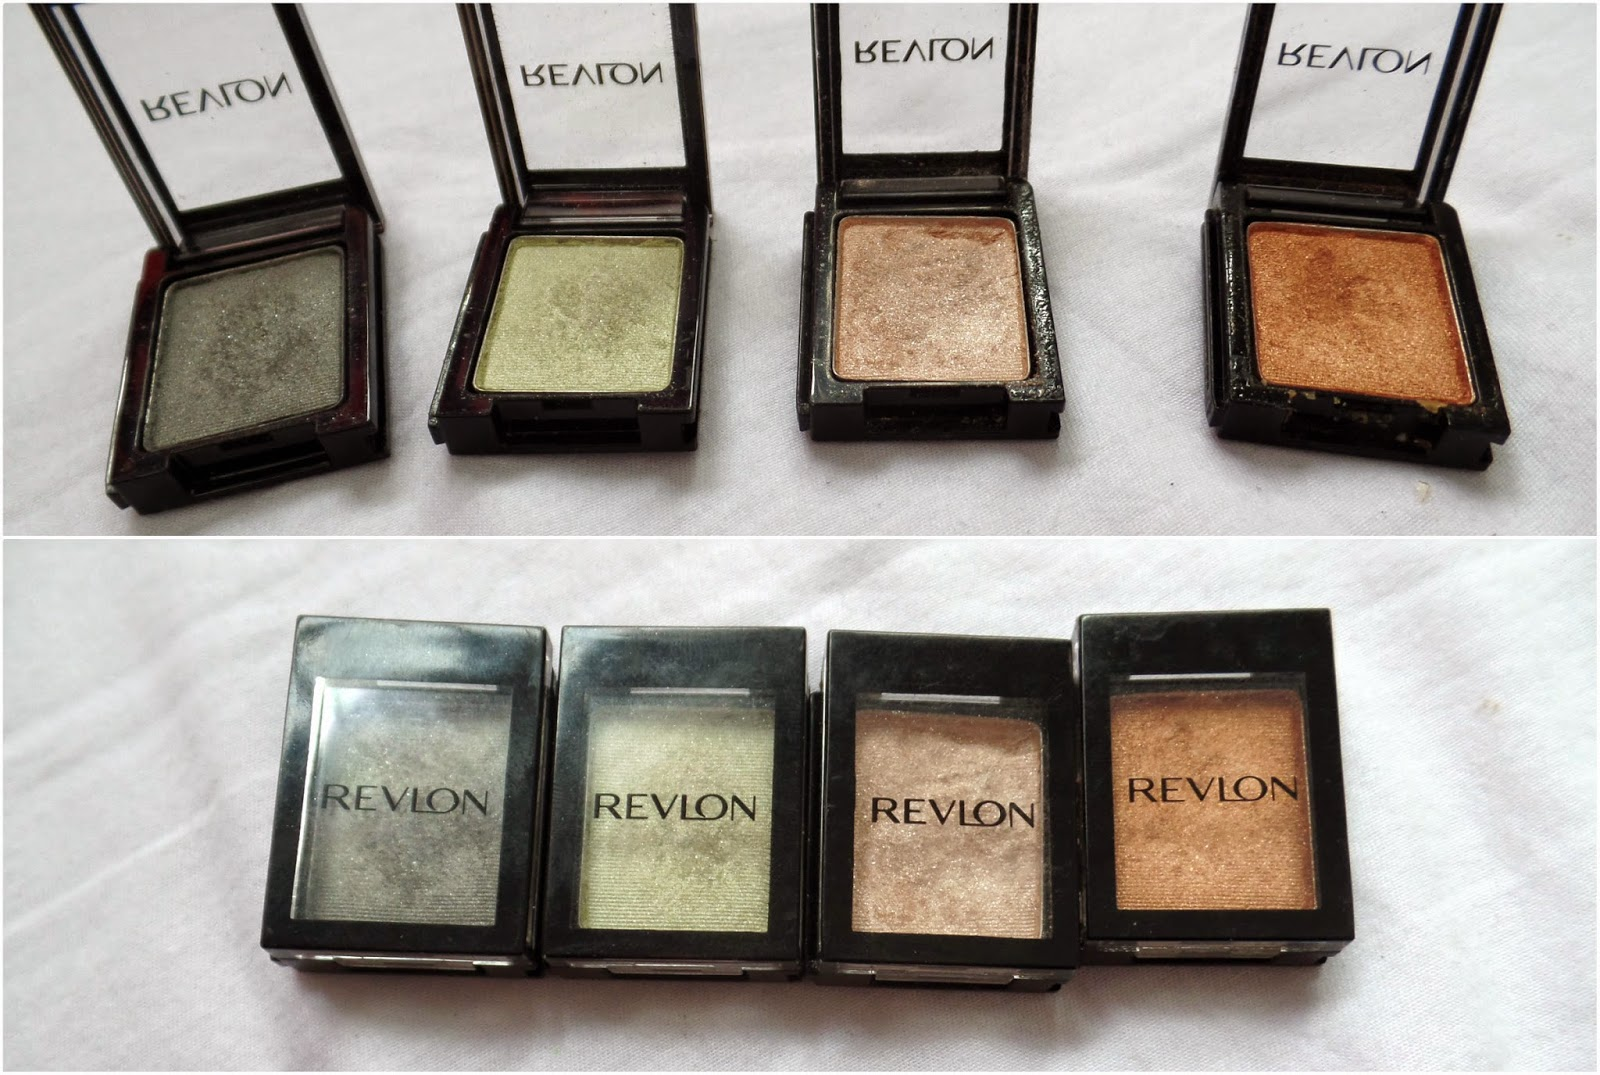 makeup, revlon, revlon colorstay, colorstay, makeup review, beauty blog, beauty blogger, revlon review, review, beauty blogging, fashion blog, fashion blogger, blogger photography, blog, blogger, lifestyle blog, lifestyle blogger, fashion blogging